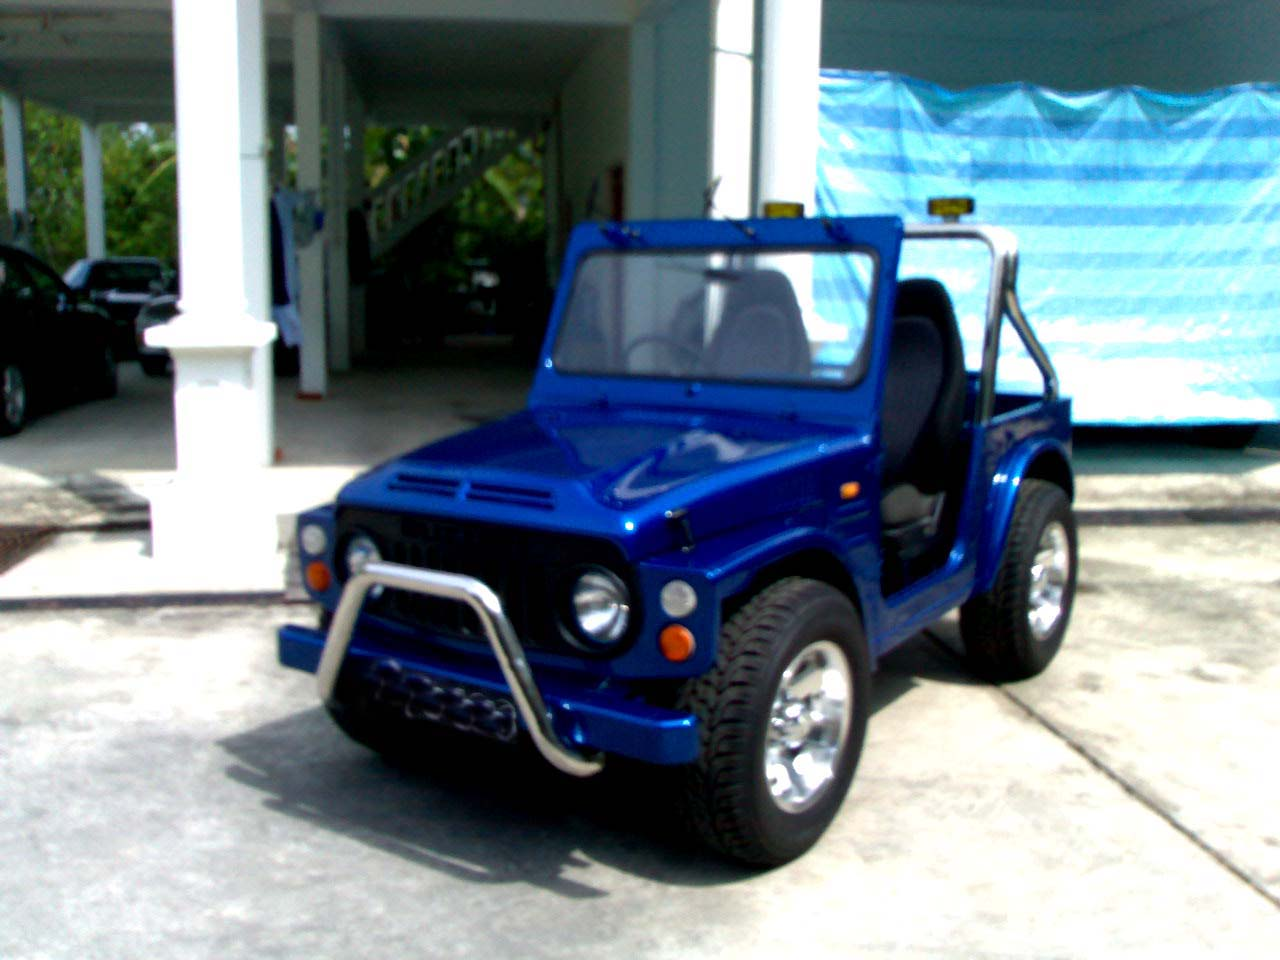 Suzuki lj80 photo - 1